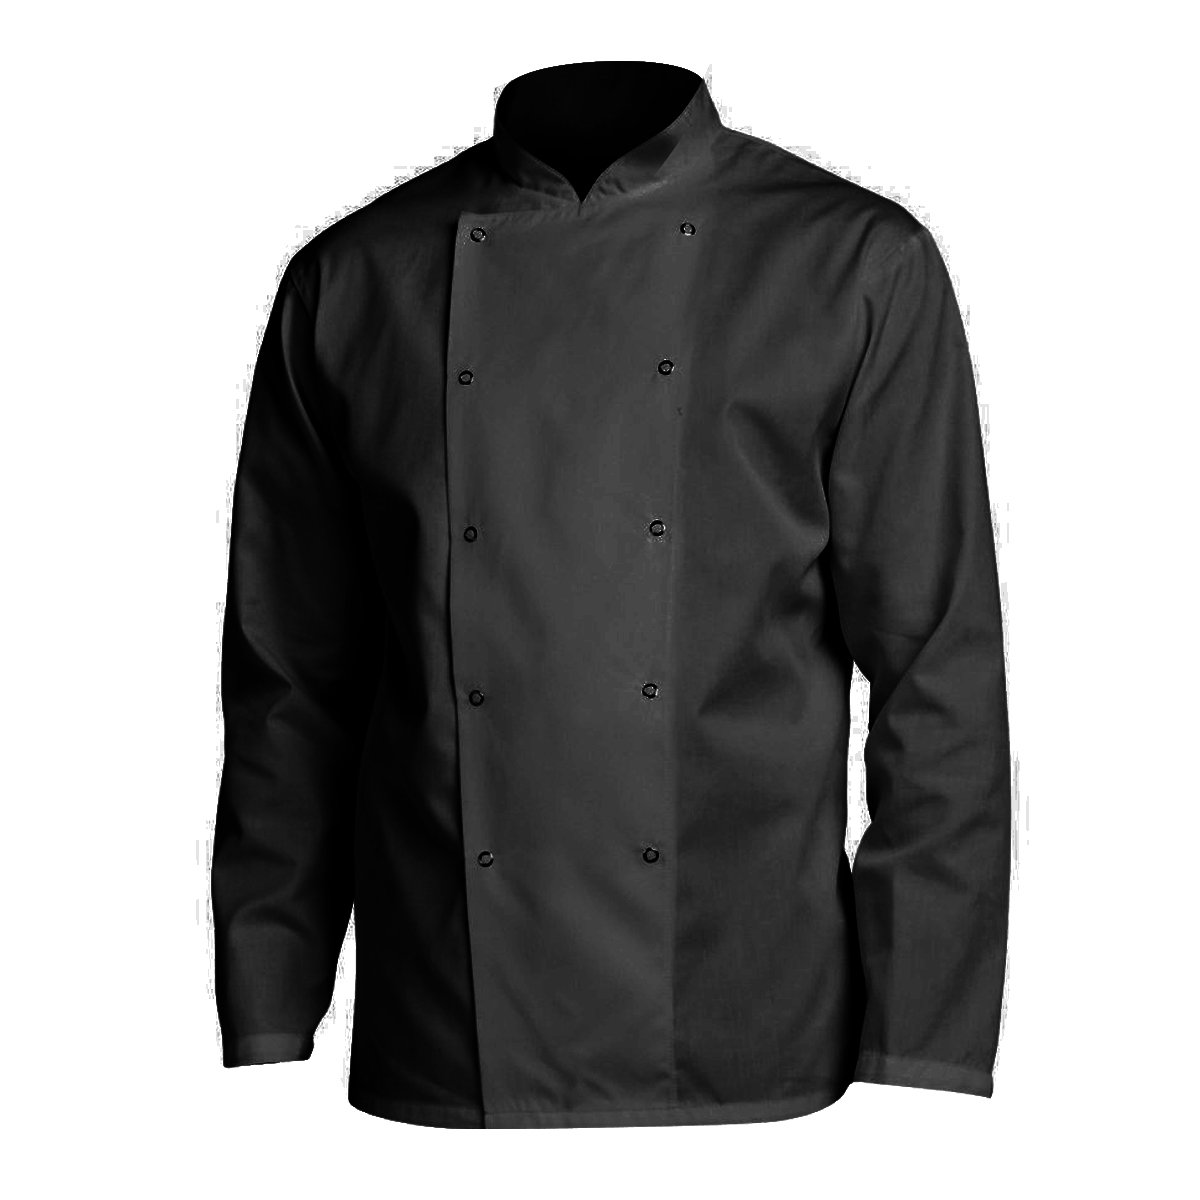 Denny's Budget AFD Chefs Jacket (XS) (Black)